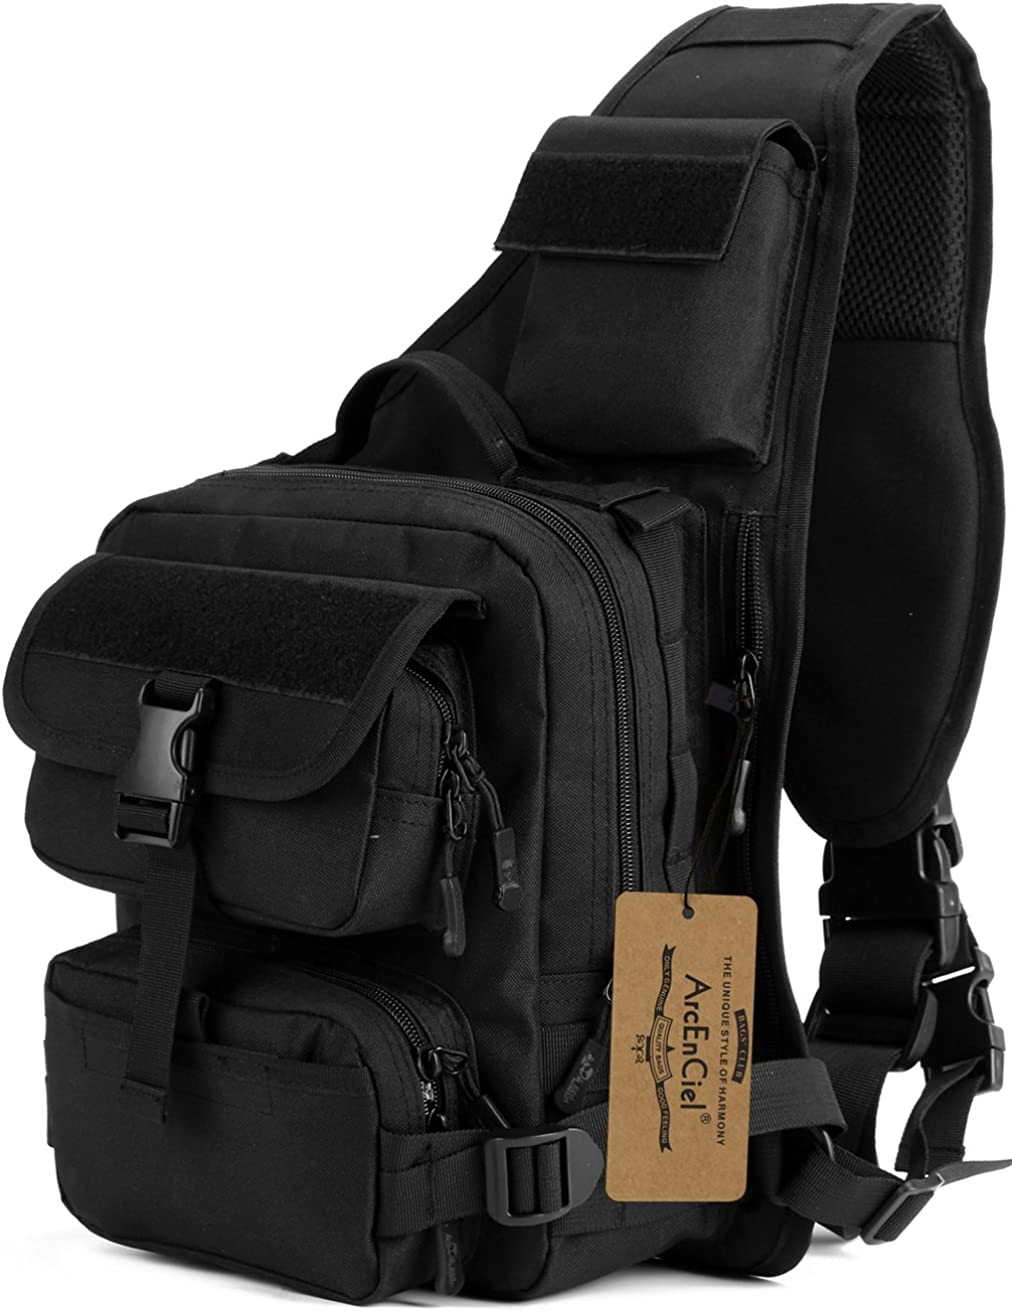 ArcEnCiel Tactical Sling Pack Military Sho San Francisco Mall Chest 70% OFF Outlet Molle Crossbody